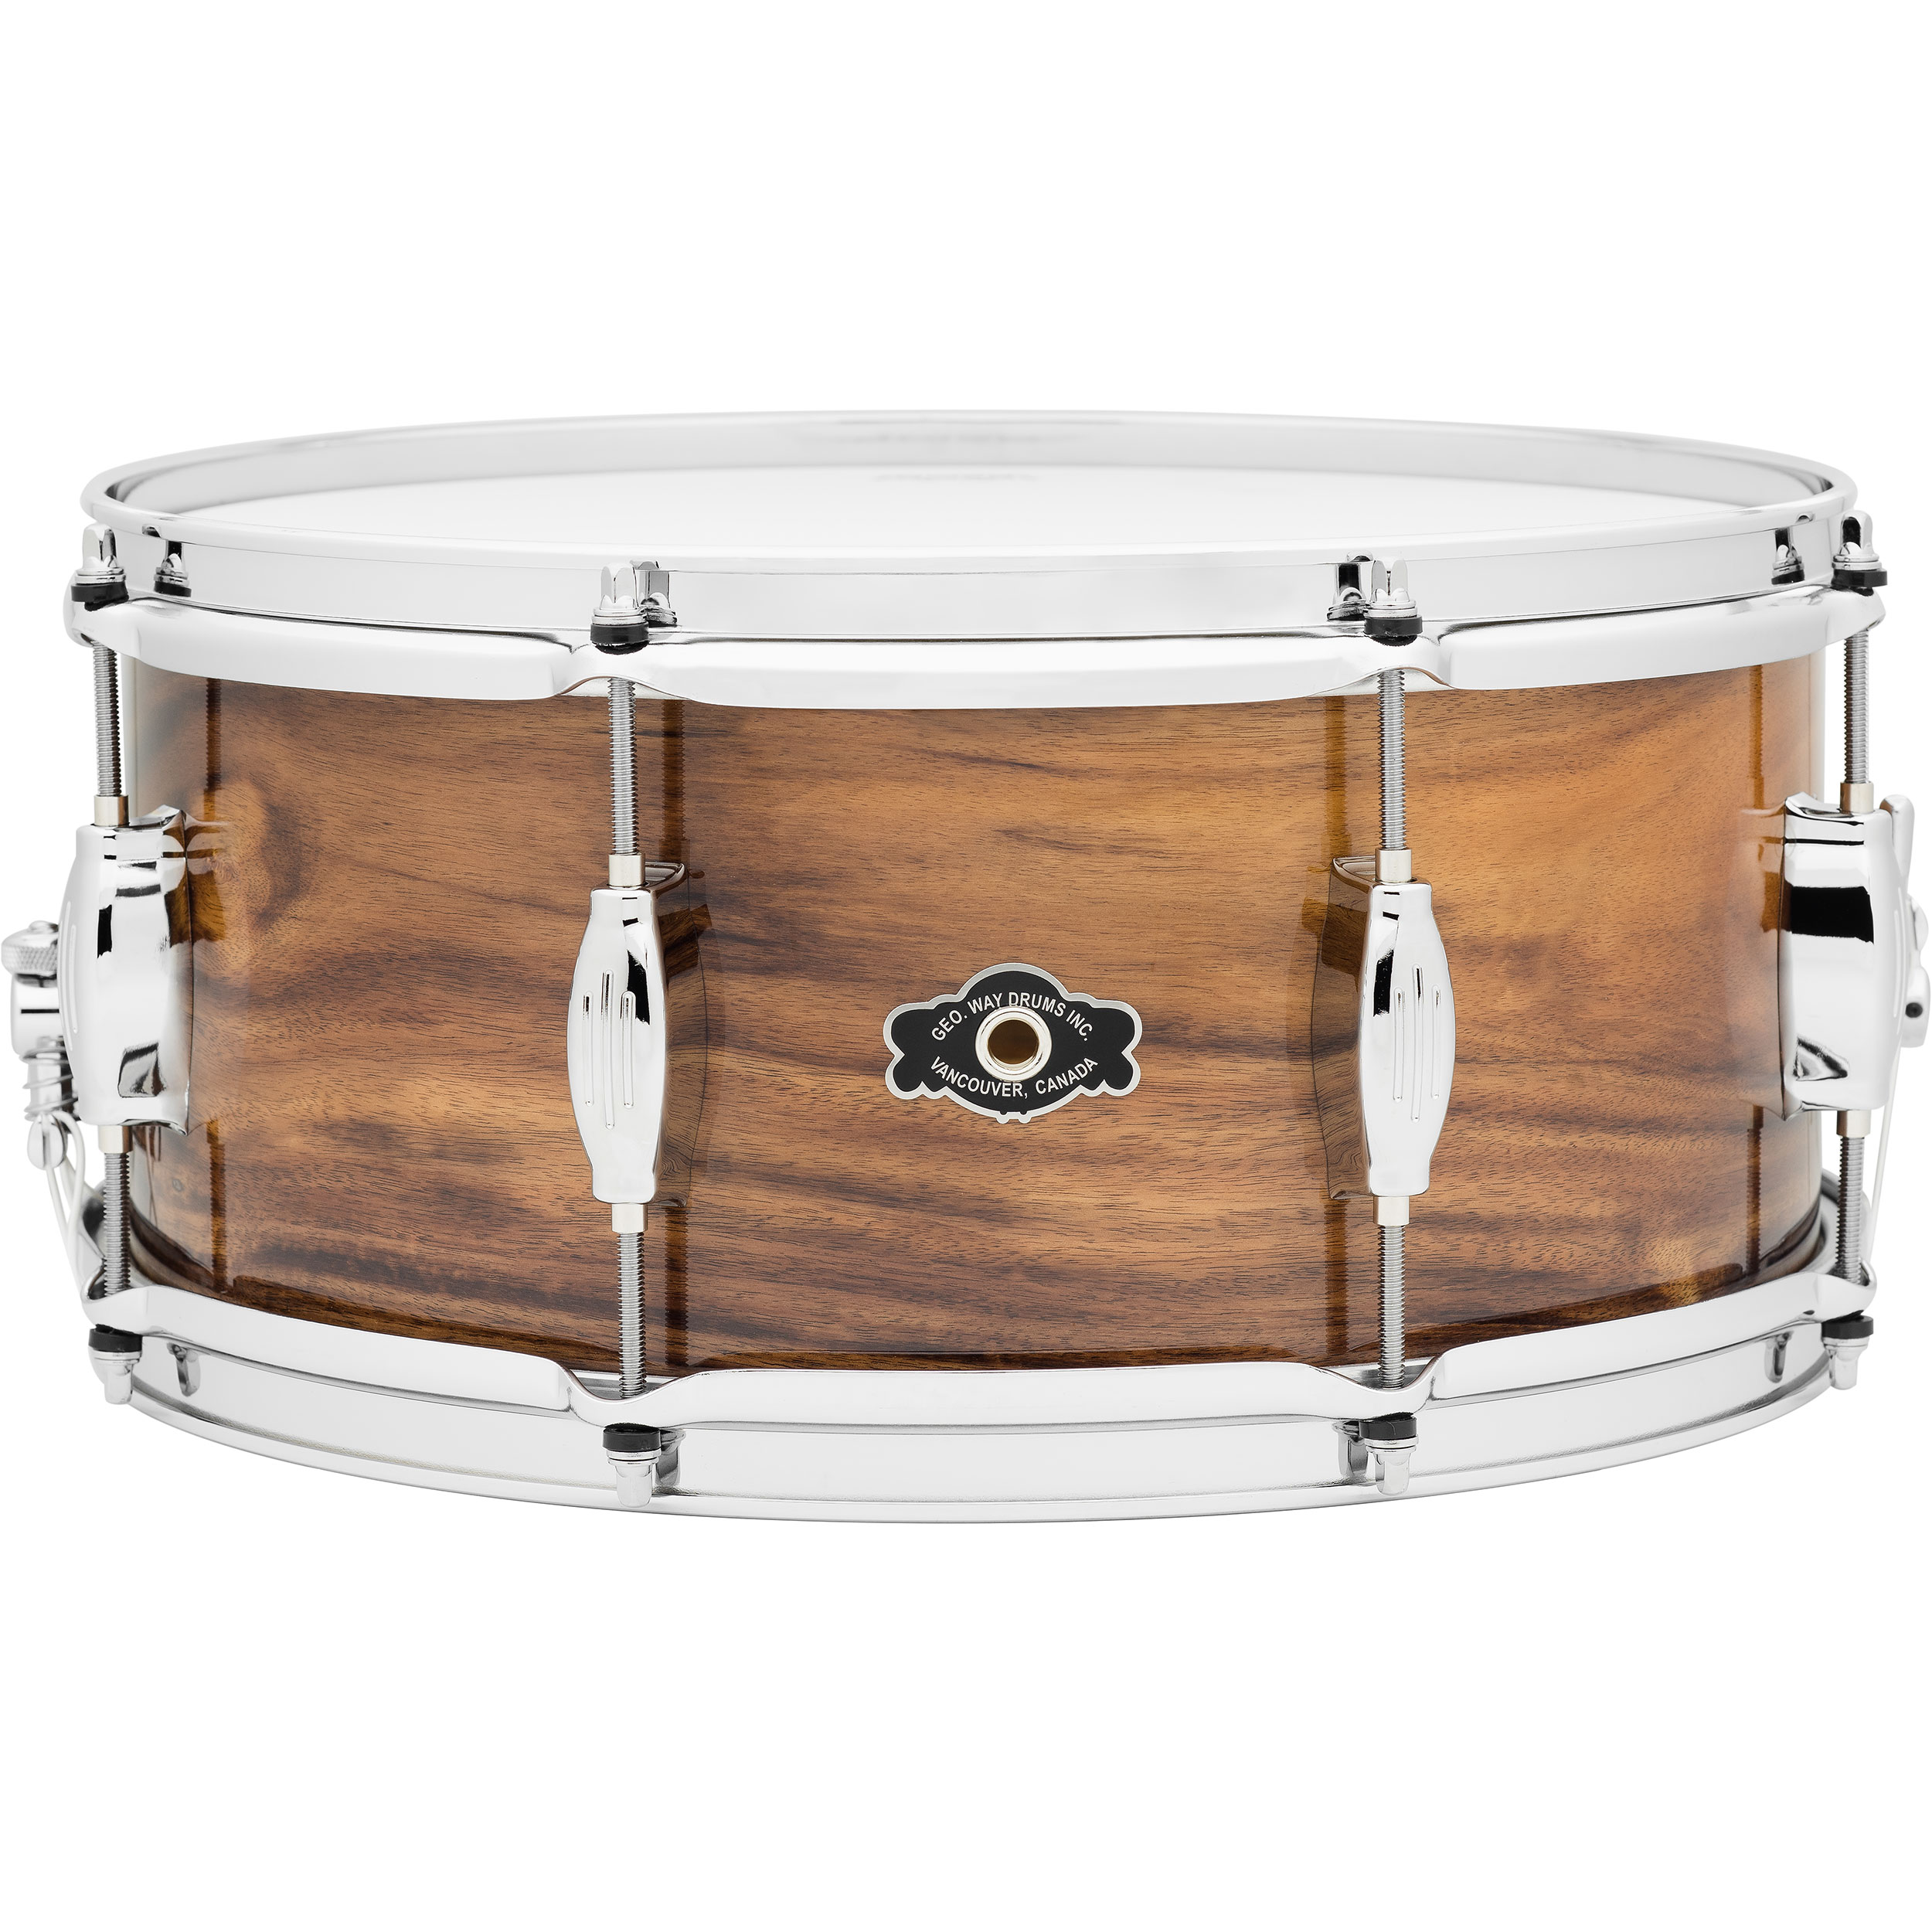 "George Way 6.5"" x 14"" George H. Way Acacia Snare Drum"